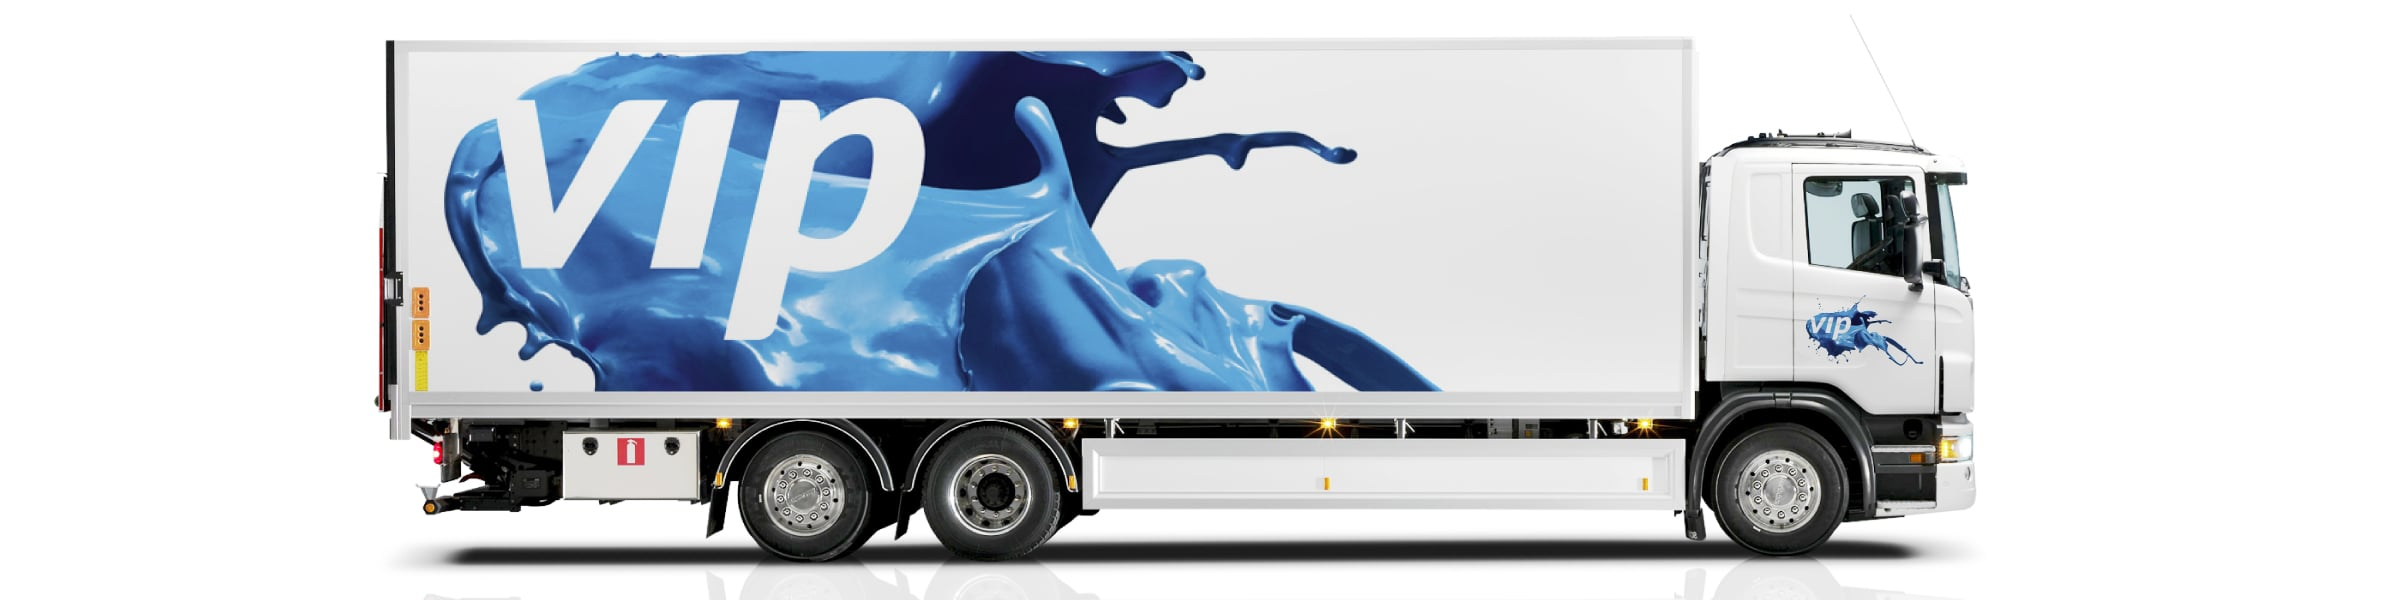 Davidson Branding VIP Packaging Corporate Brand Identity Logo Design Dynamic Vehicle Graphics Truck Livery Transport